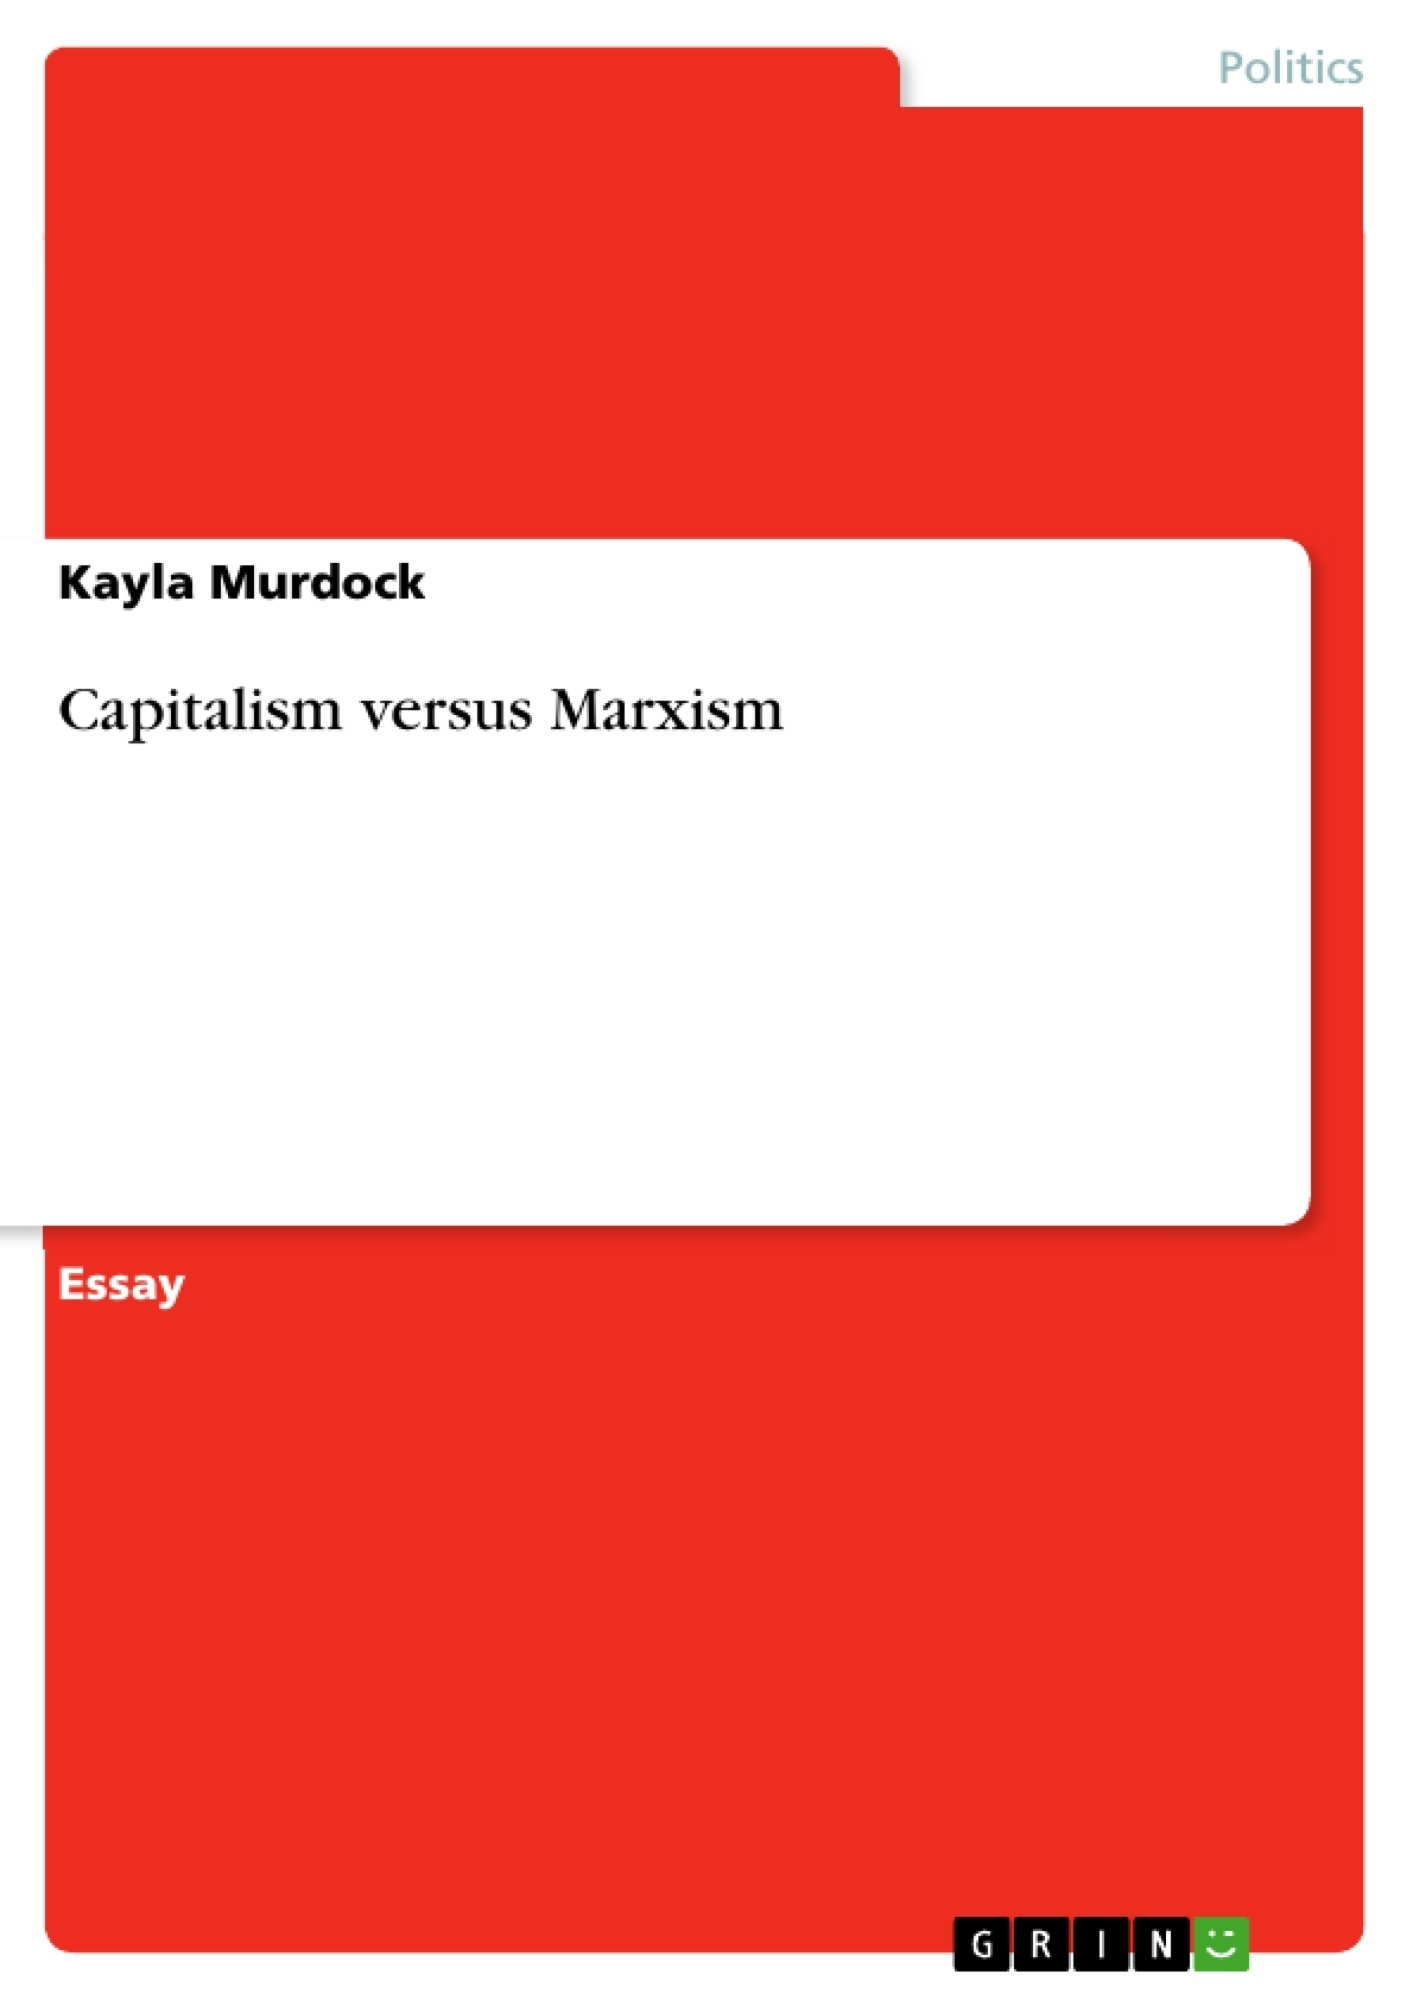 Karl Marx Essay Examples - Free Research Papers on blogger.com